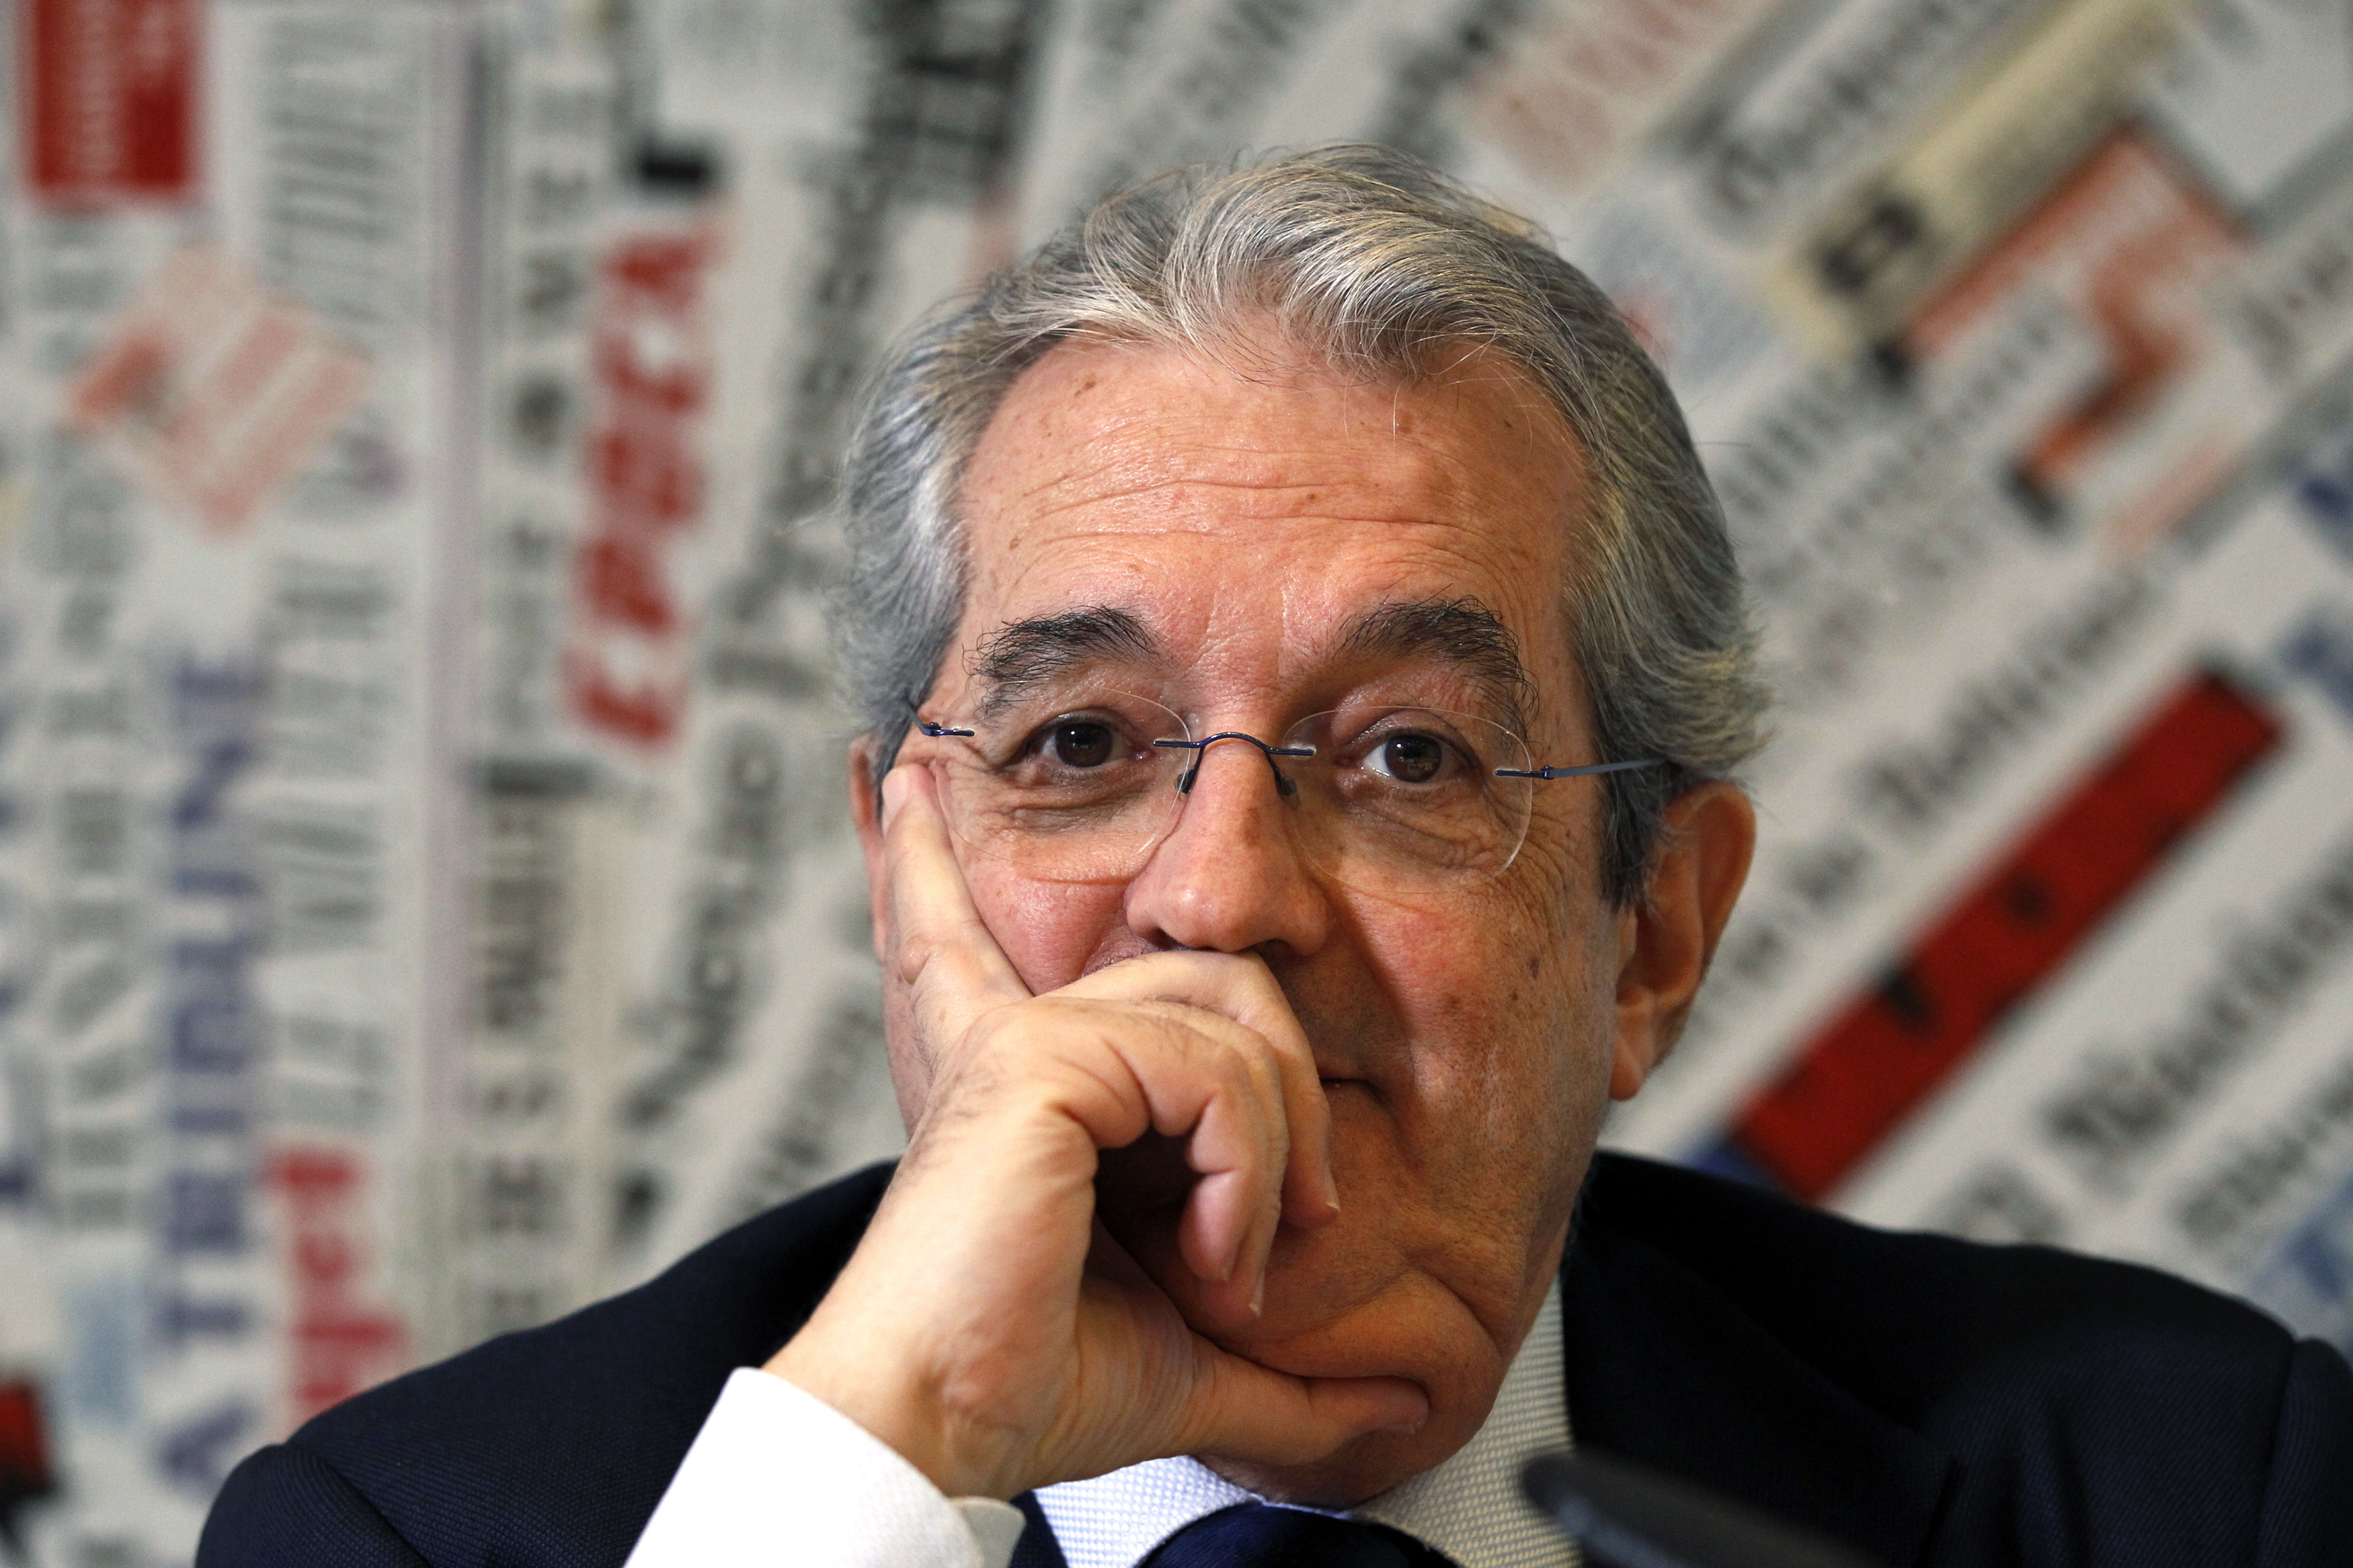 UniCredit's choice of new chairman is a good omen ...